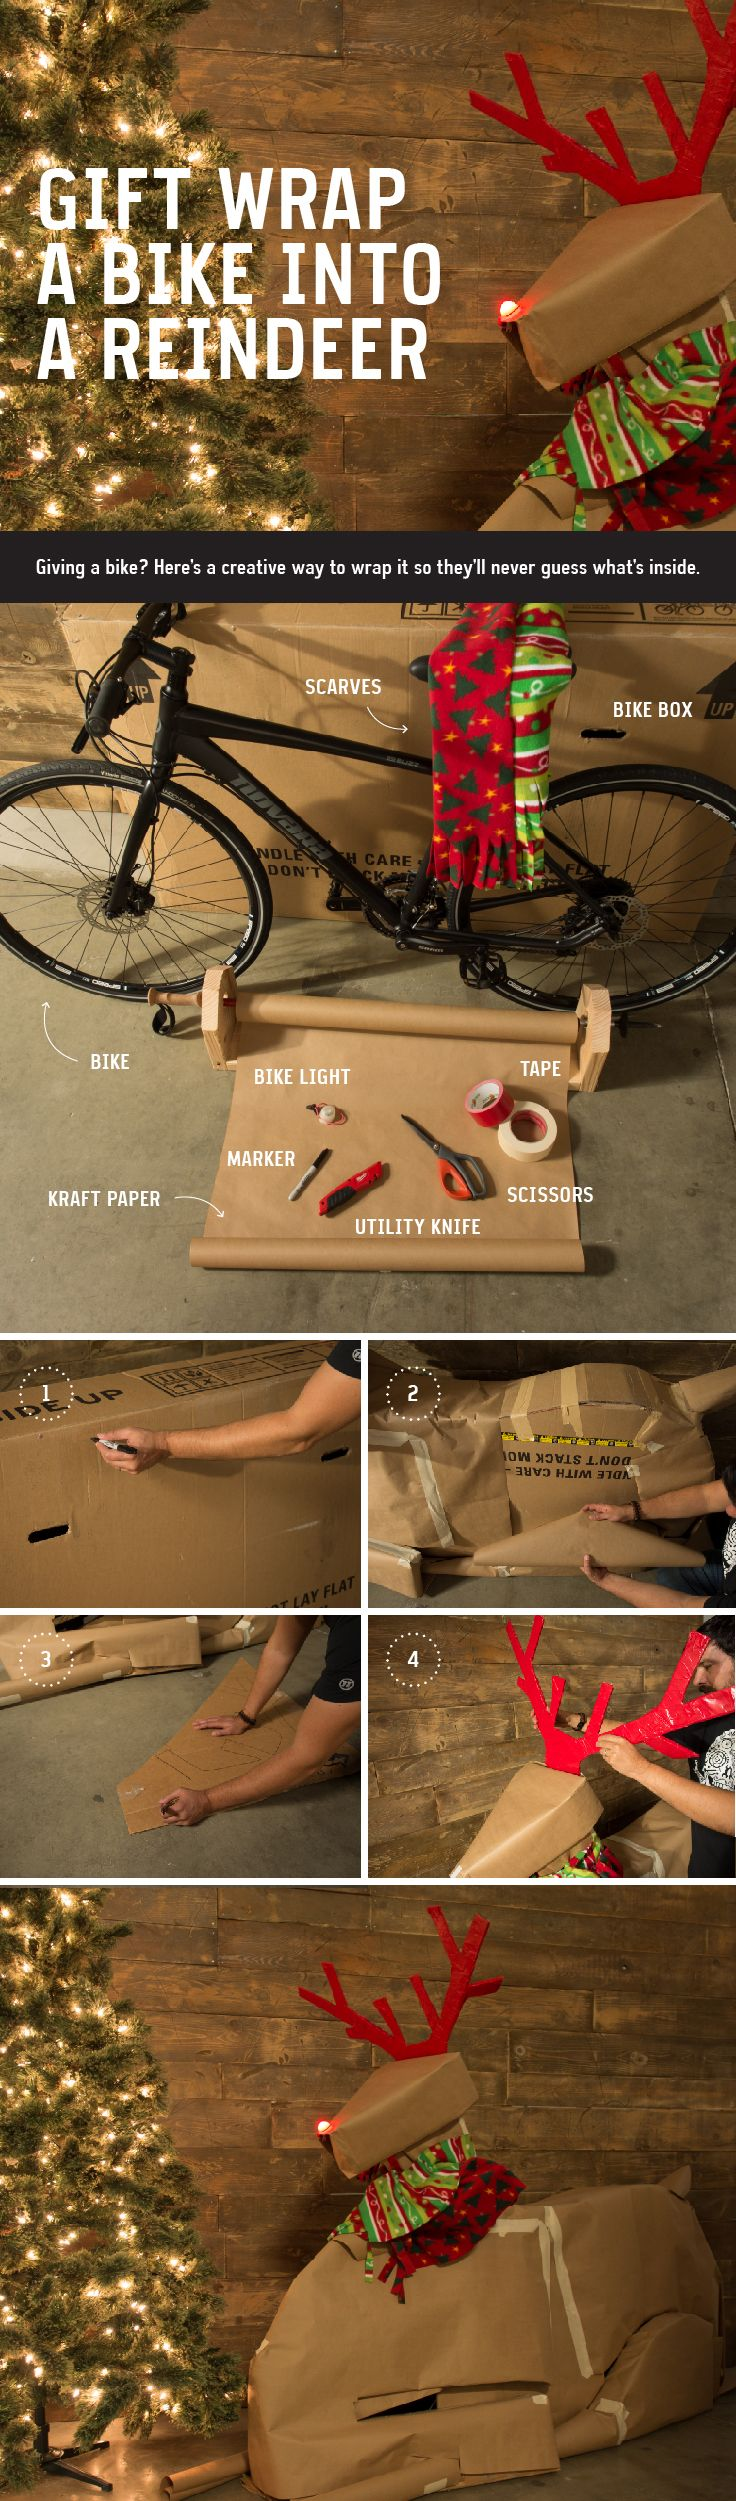 How to Gift Wrap A bike into a reindeer